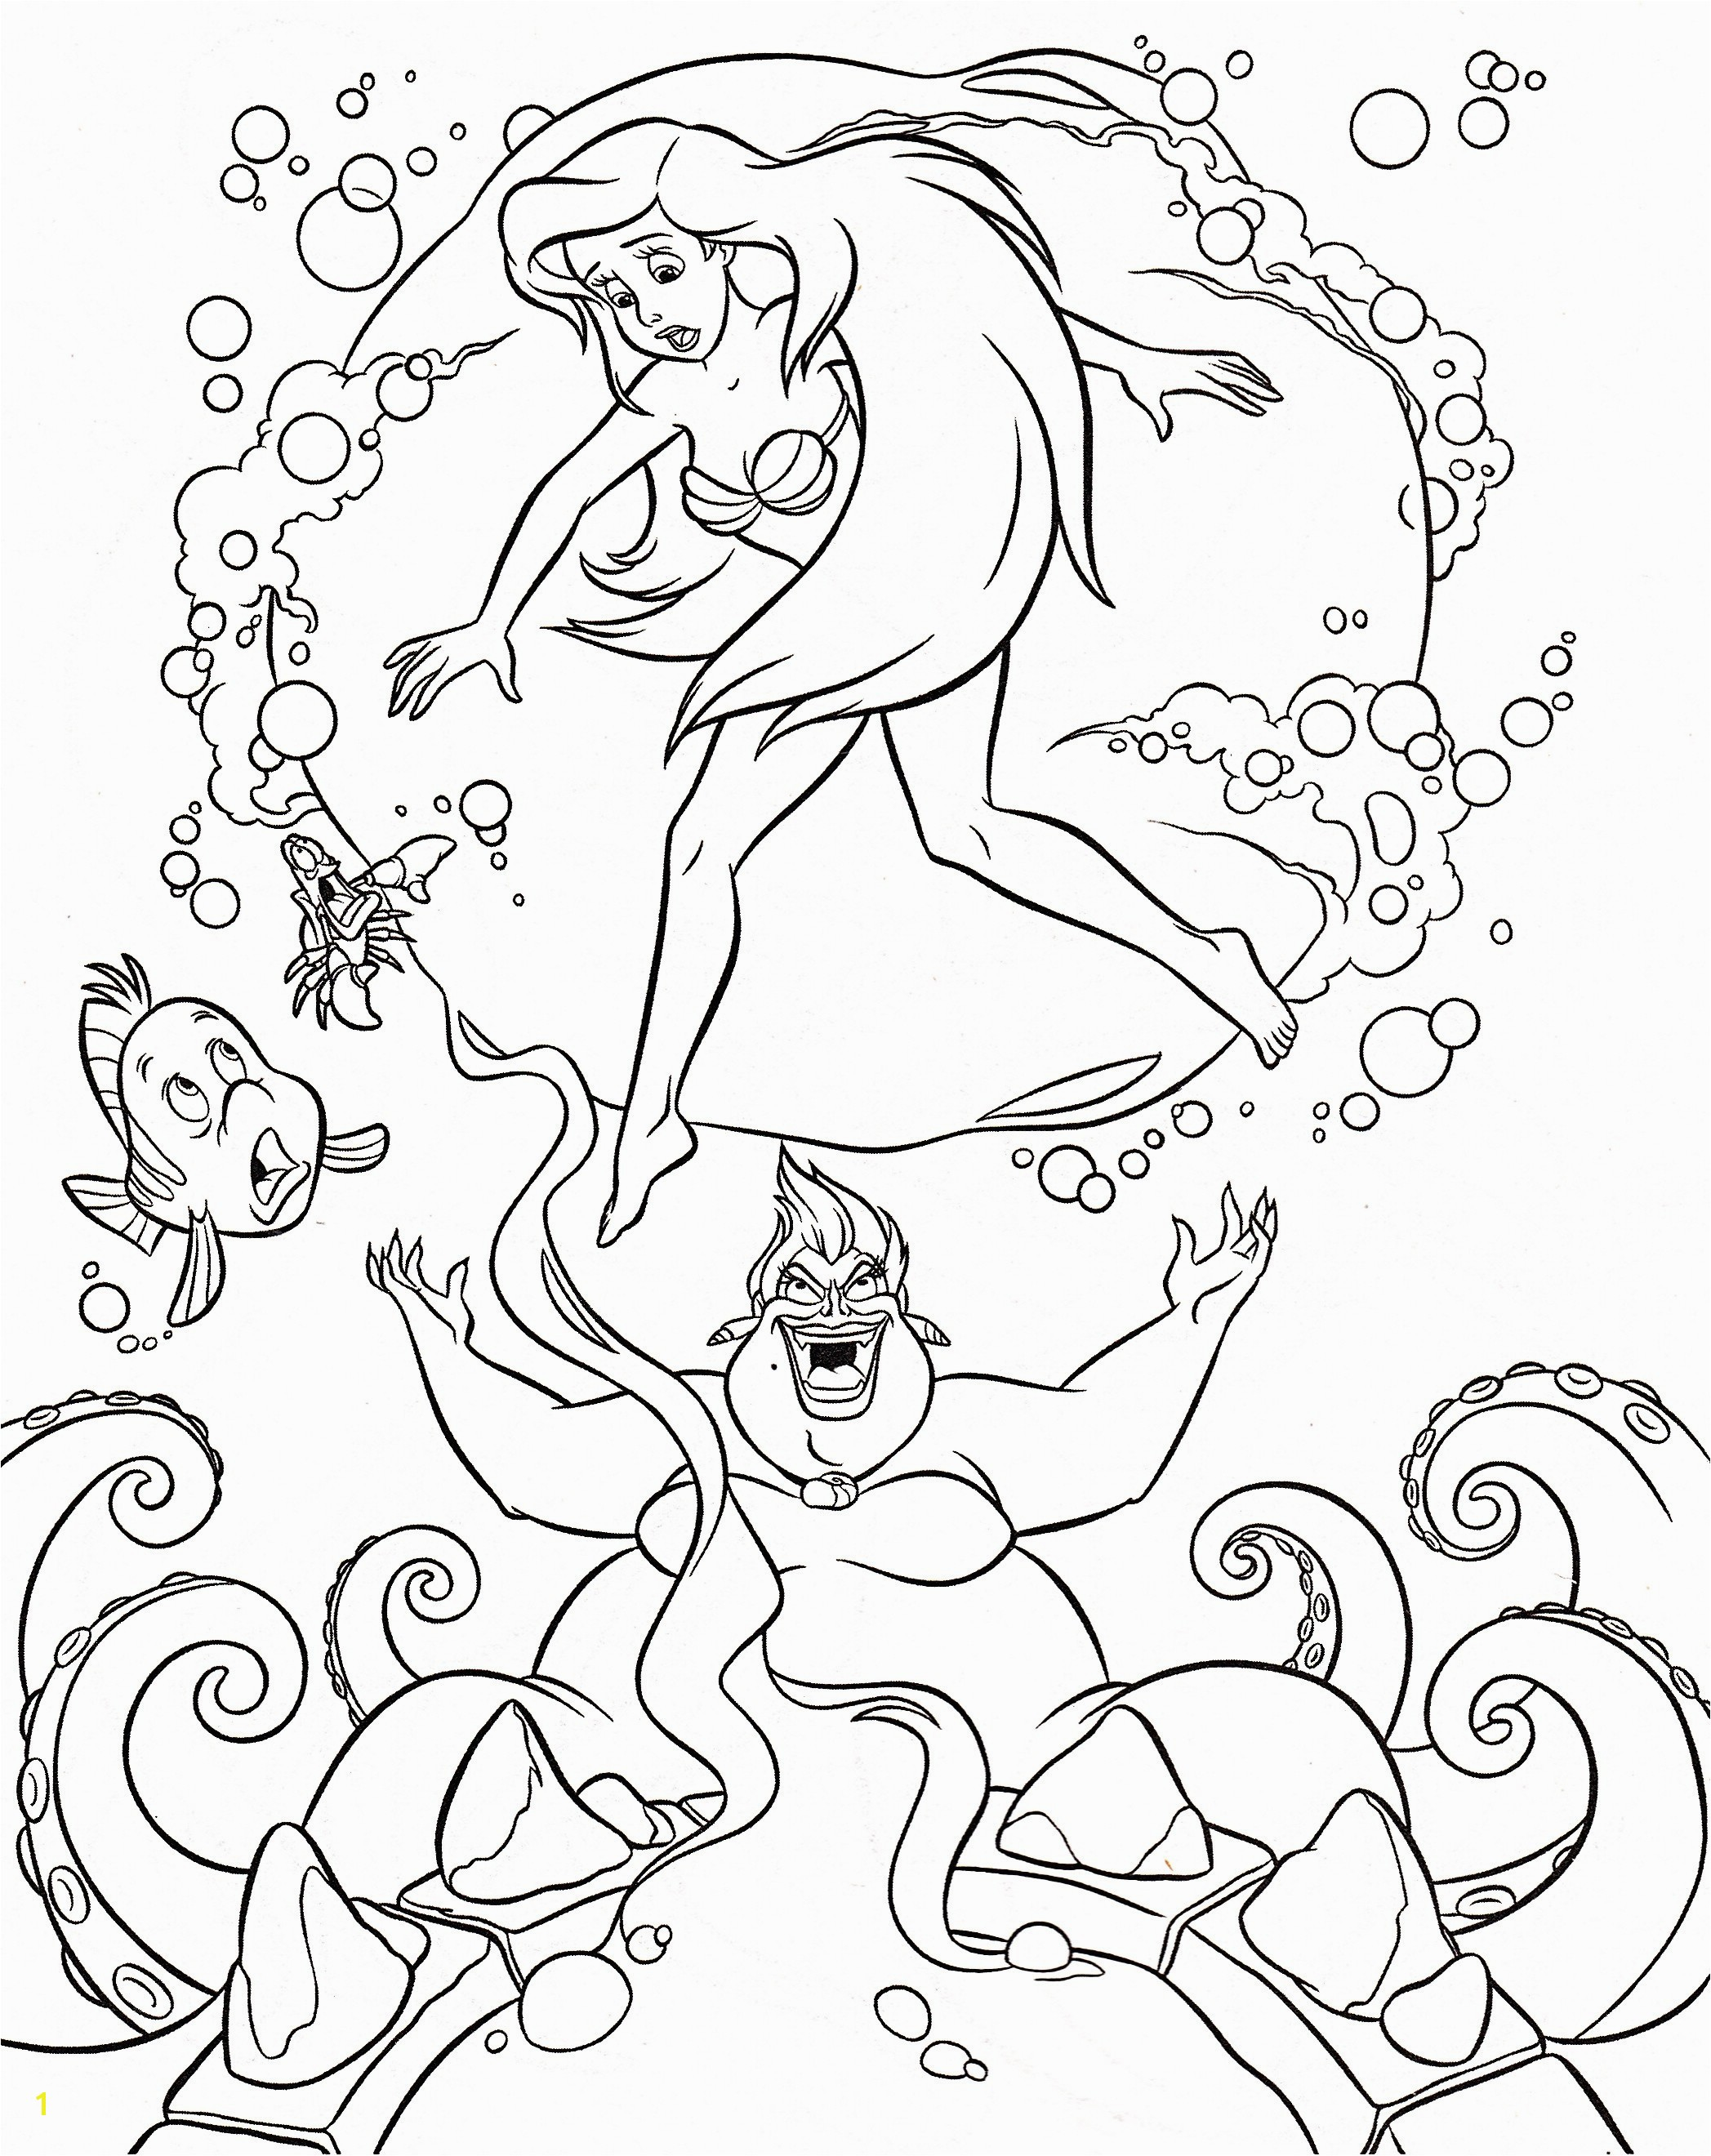 14 Fresh Crossbow Coloring Pages Image